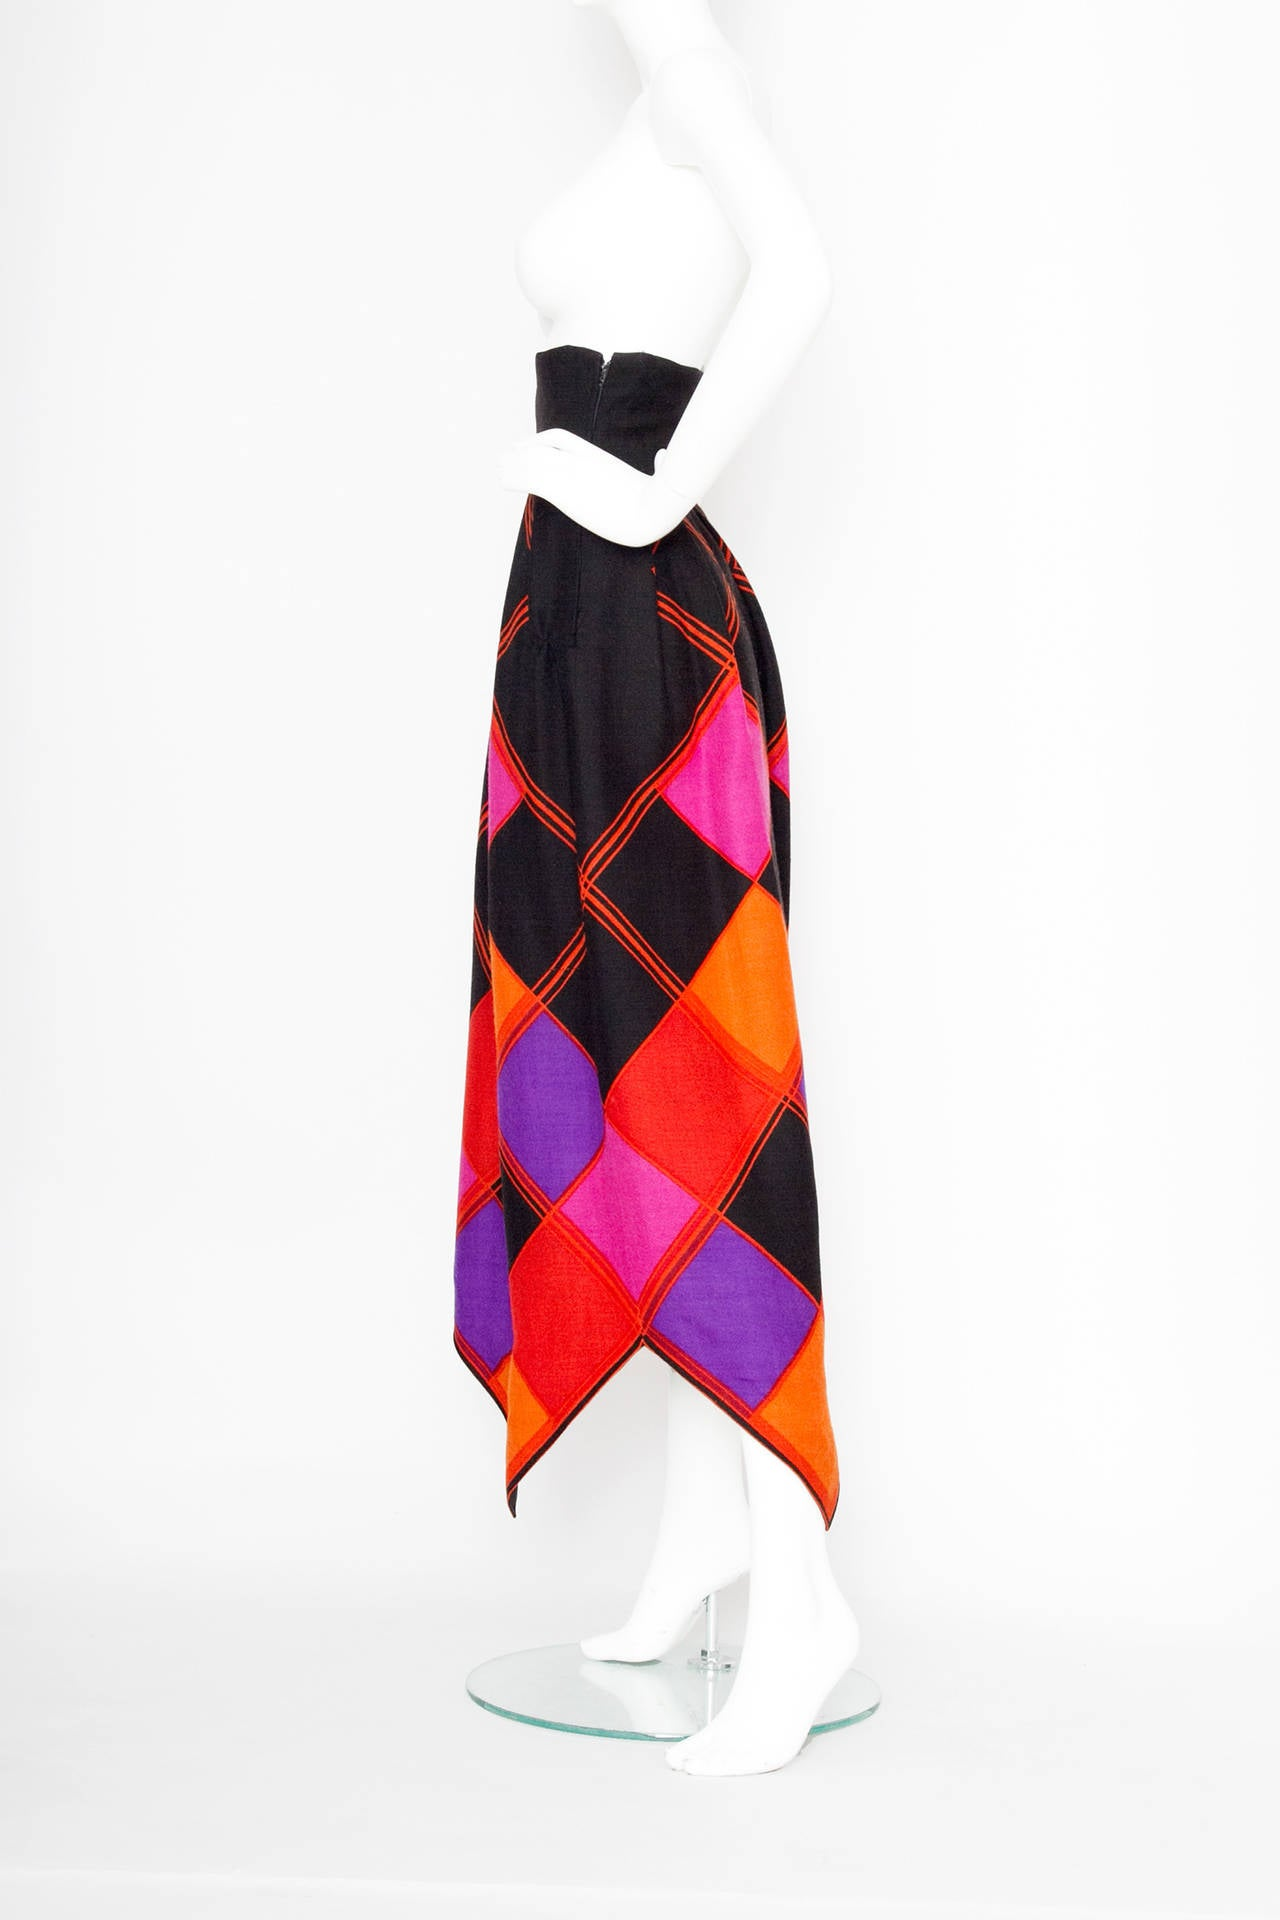 Doucmented 1971 Pierre Cardin Graphic Wool Skirt 3